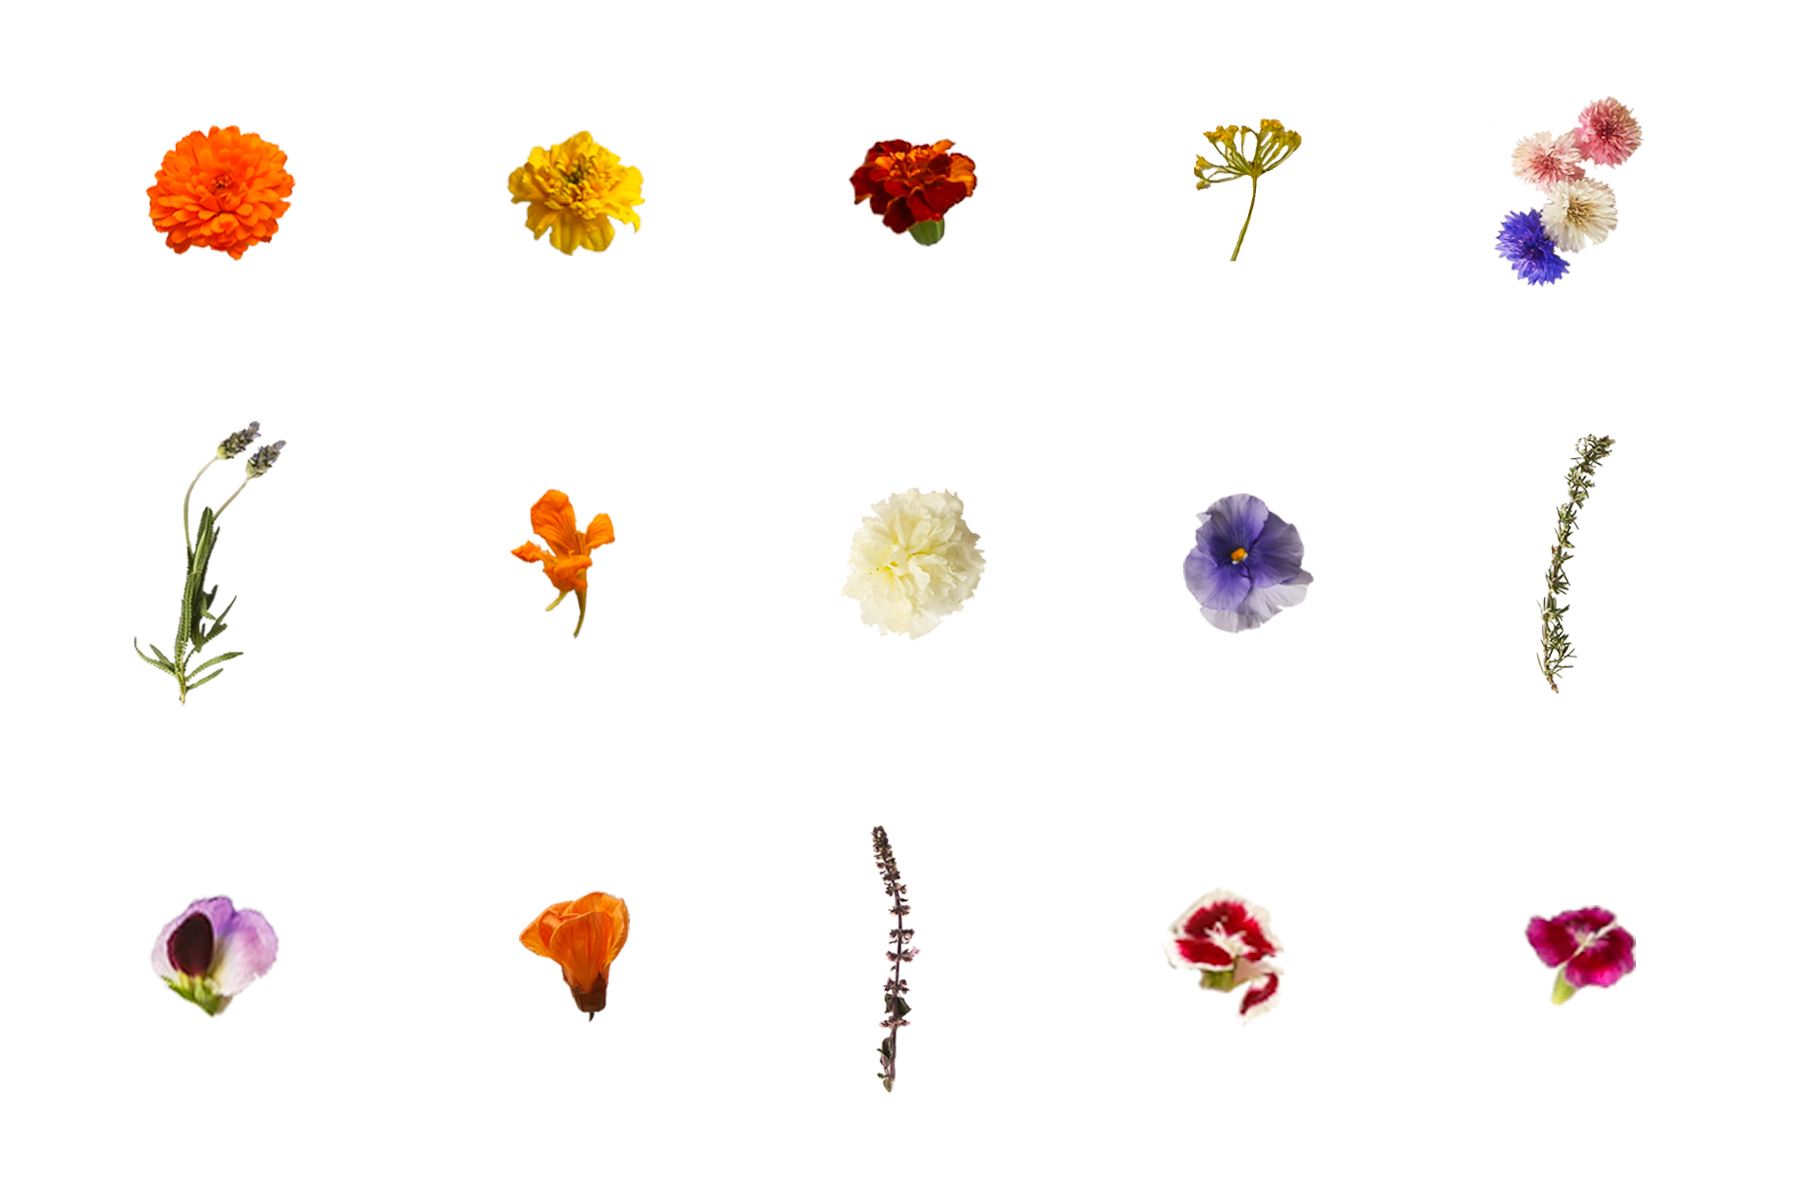 Edible flower glossary - Paperless Post